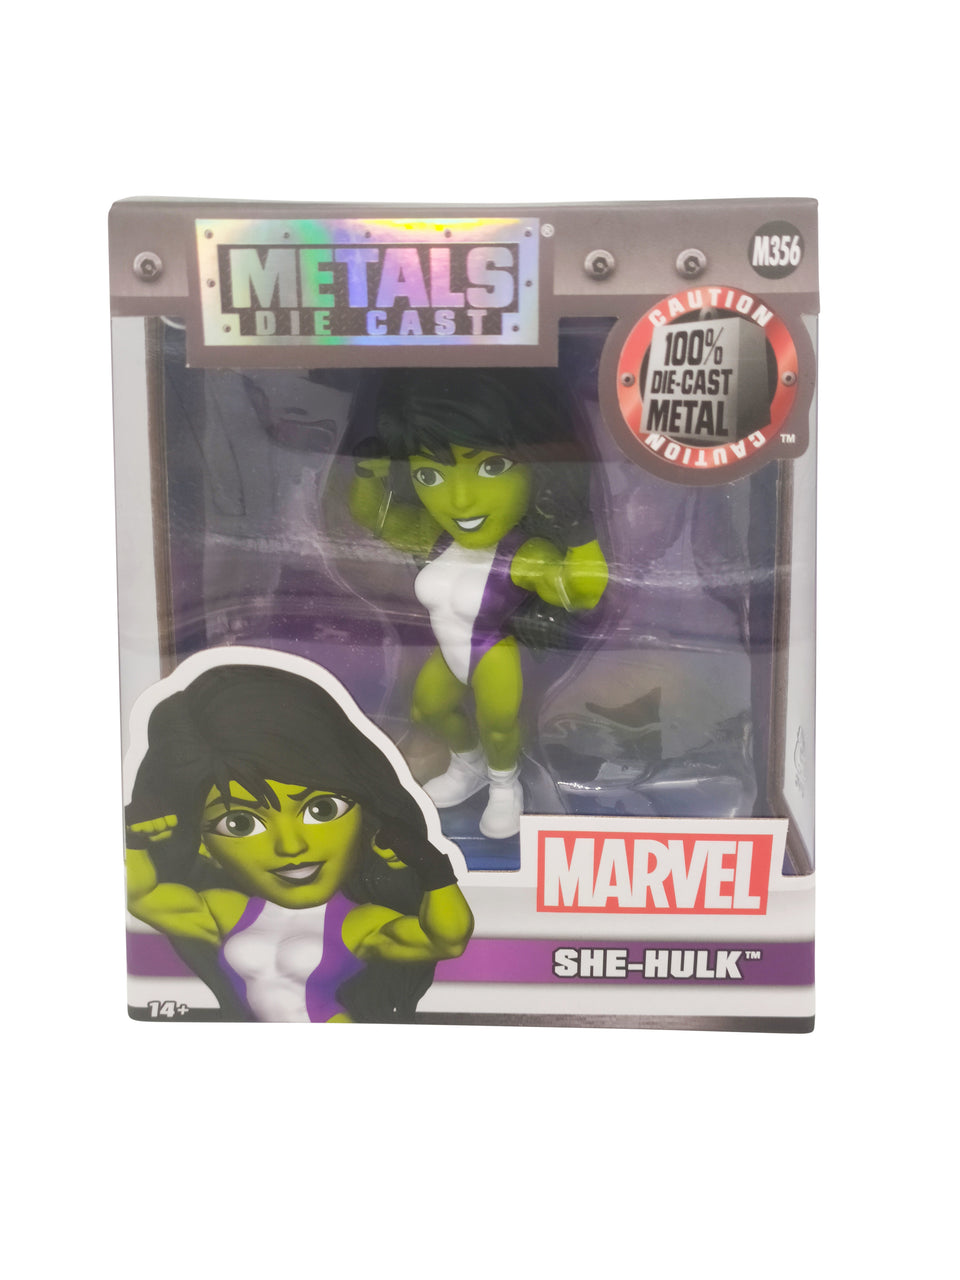 marvel she-hulk figure  - metals die cast